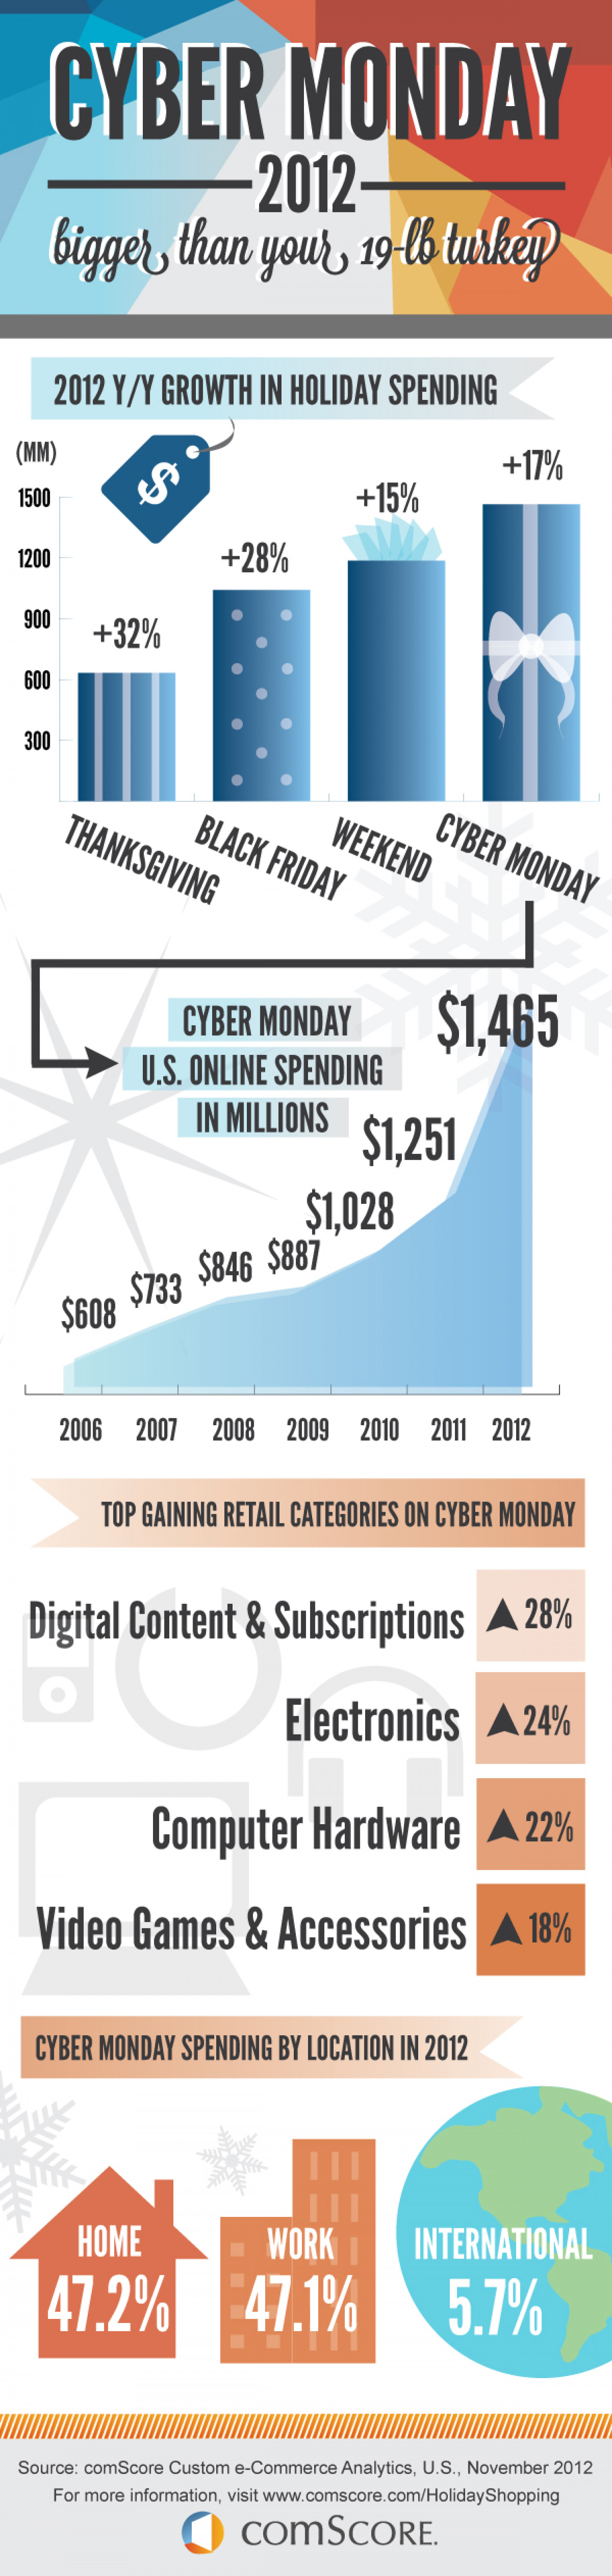 Cyber Monday By the Numbers Infographic